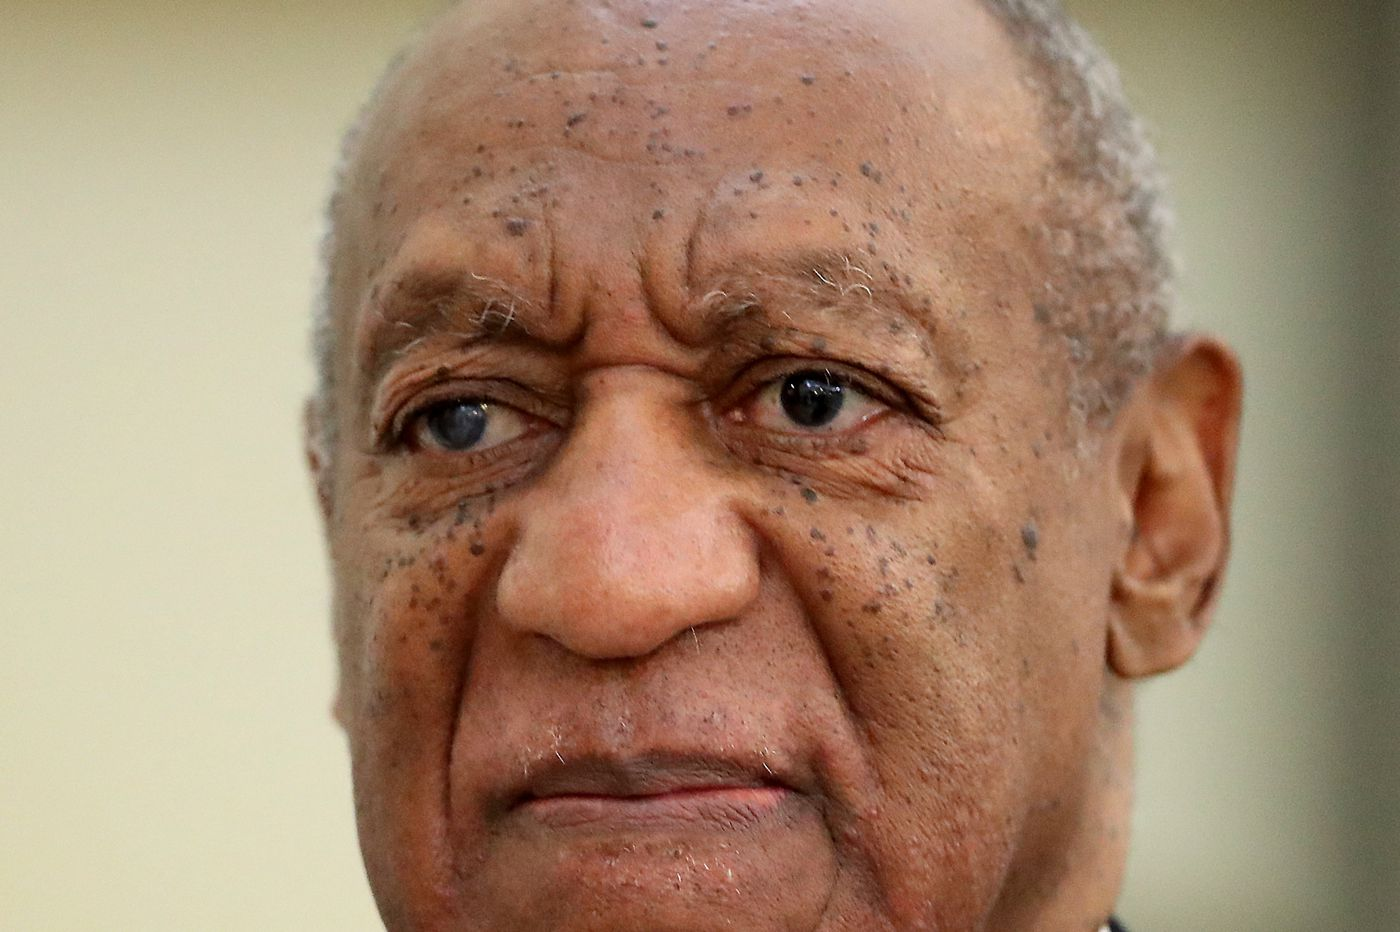 Cosby's lawyers seek new trial at Harrisburg hearing, testing limits of #MeToo-era justice